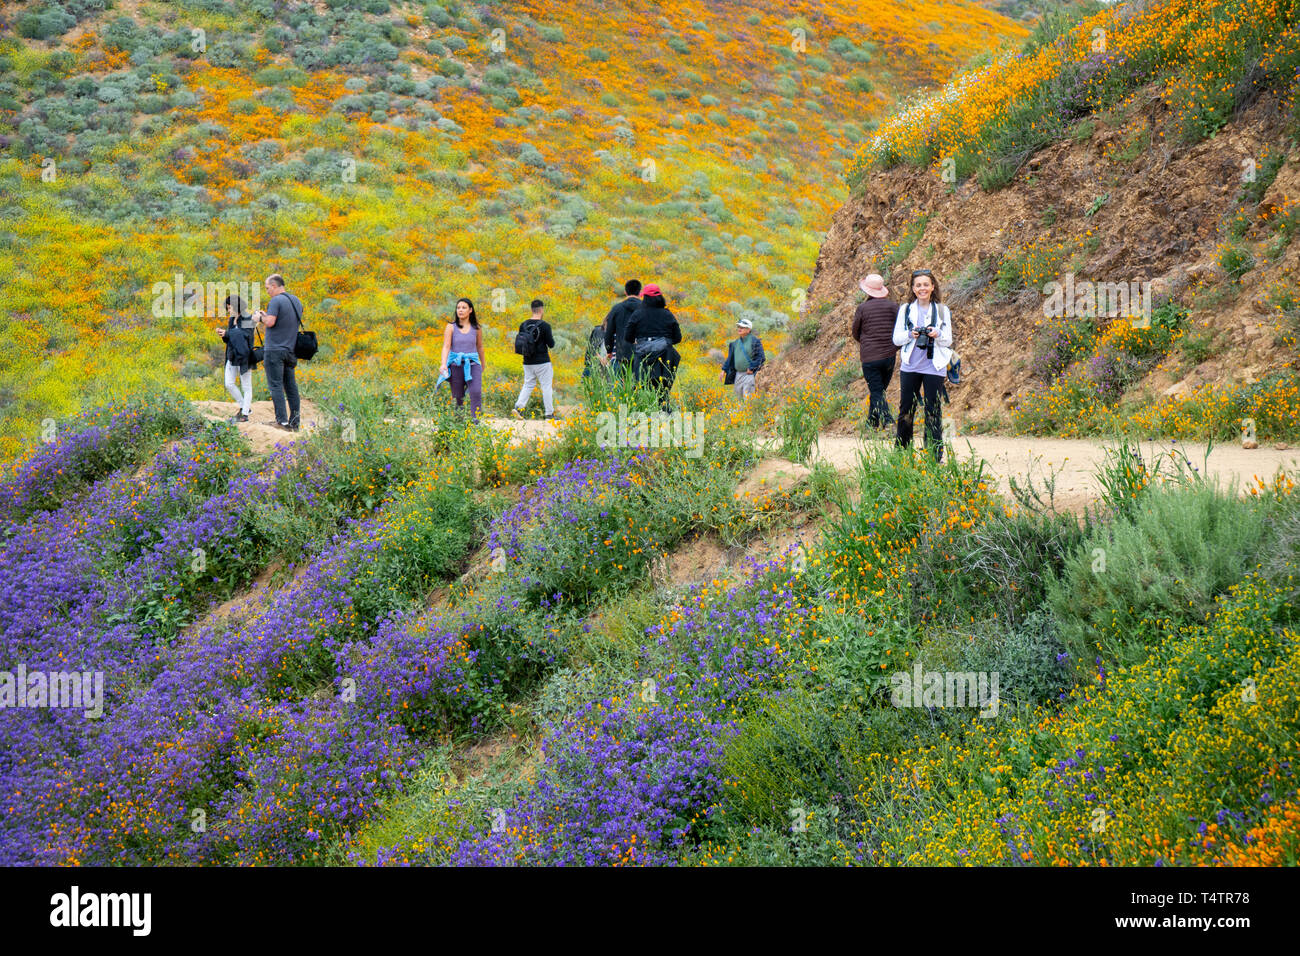 Lake Elsinore, California - March 20, 2019: Happy, smiling photographers and tourists take photos and walk the trail at Walker Canyon, admiring the wi - Stock Image